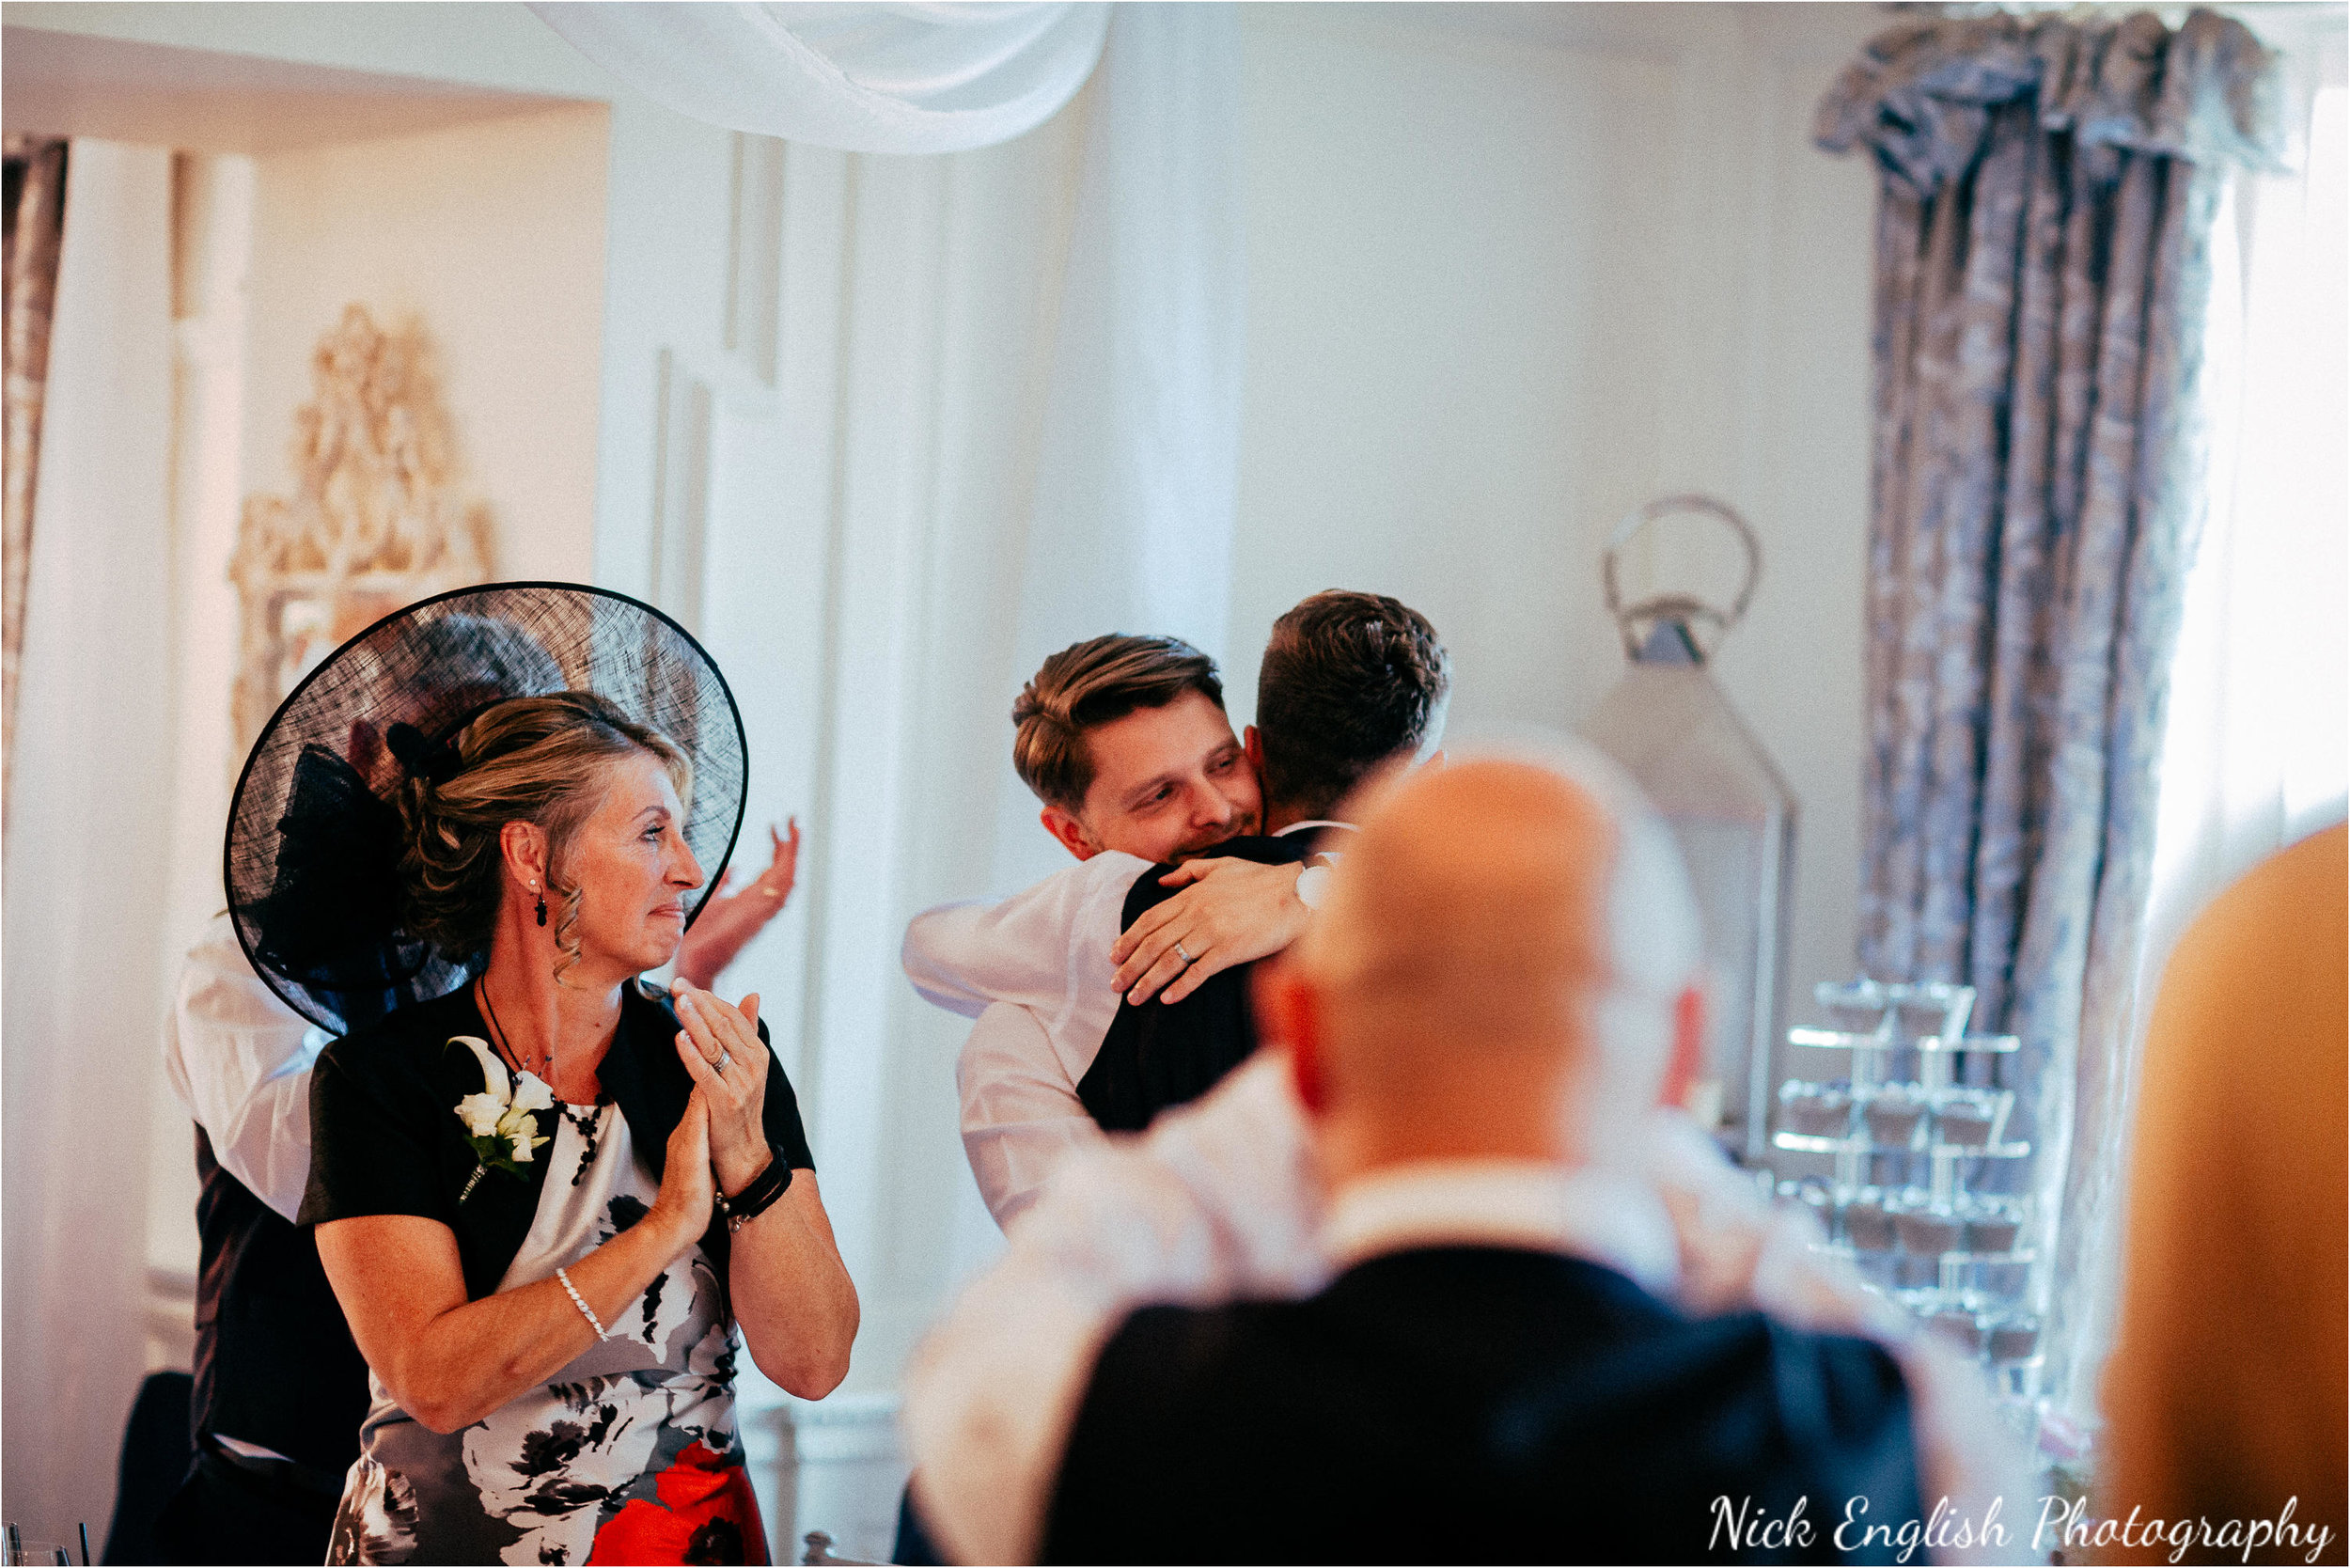 Eaves_Hall_Wedding_Photographs_Nick_English_Photography-209.jpg